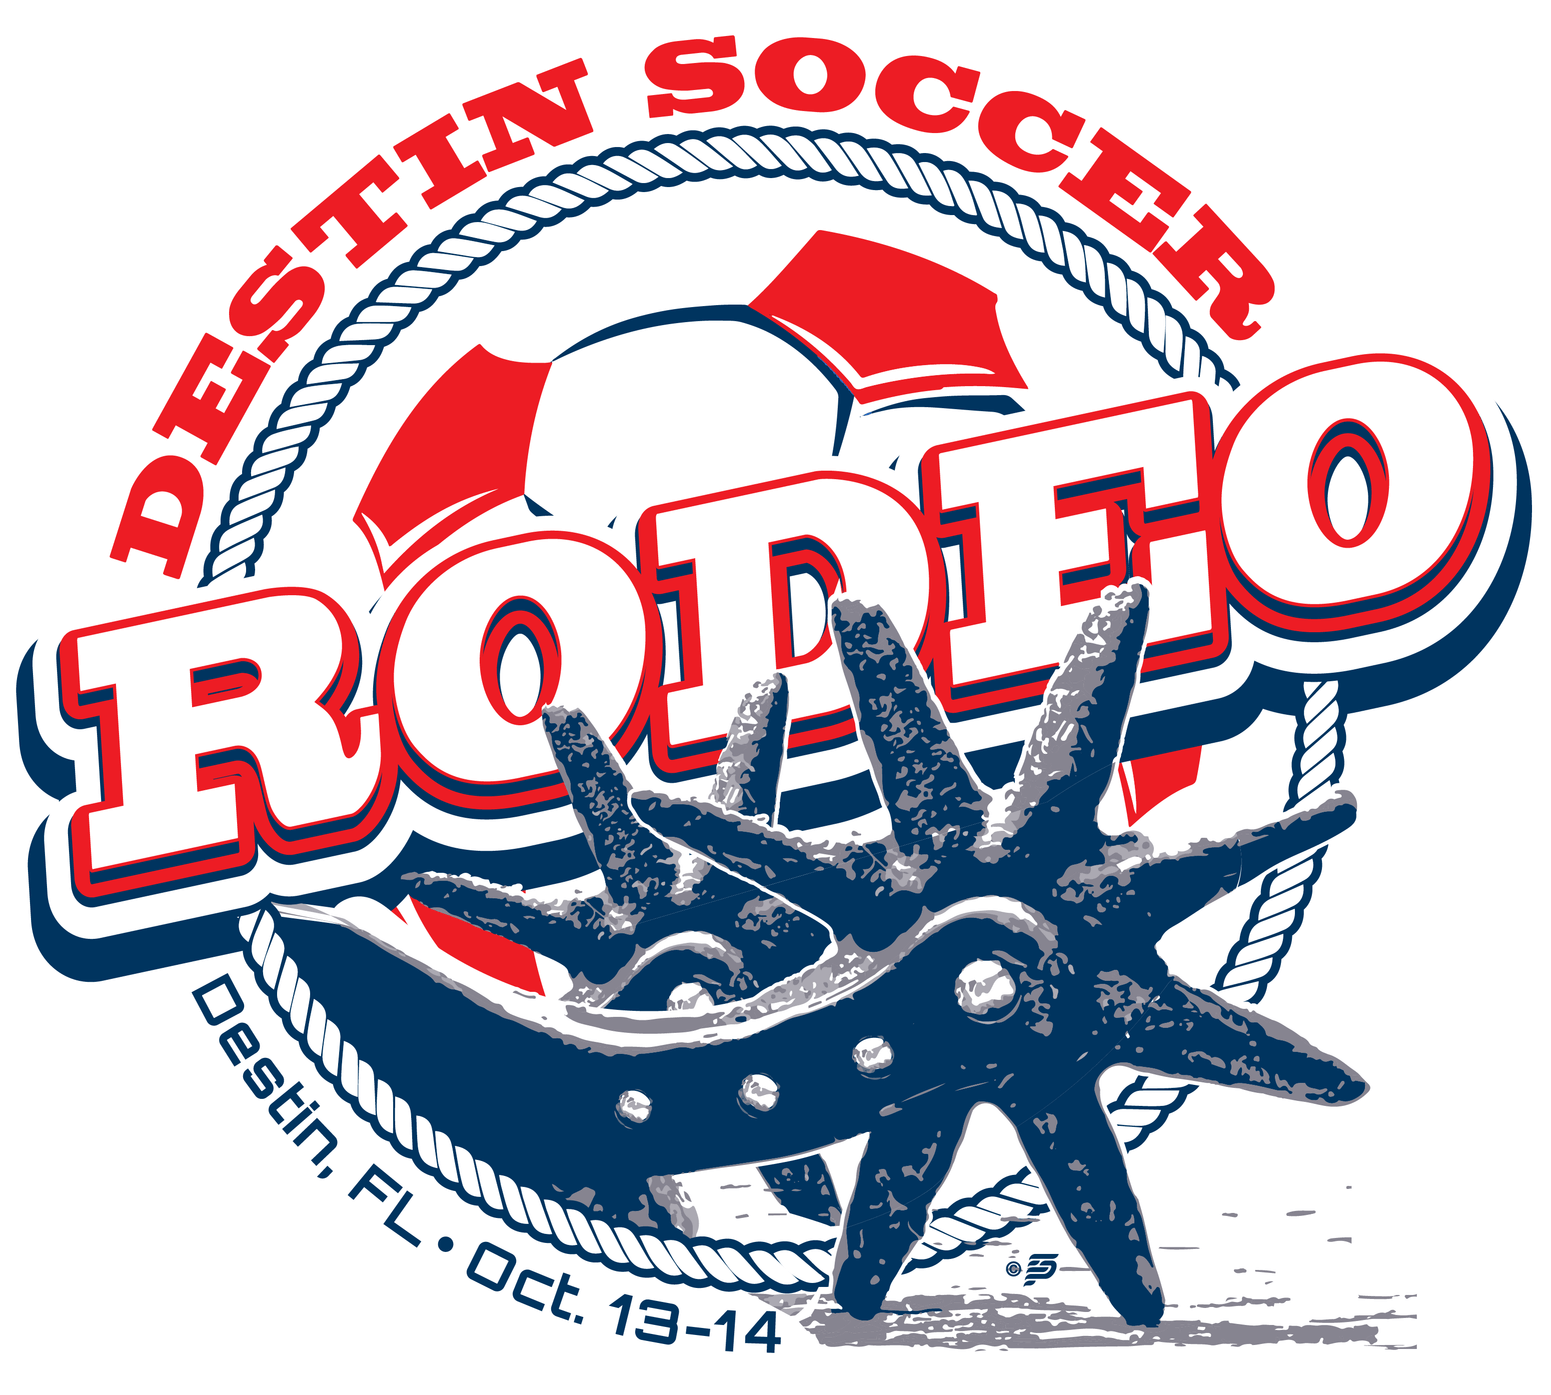 Destin Soccer Rodeo